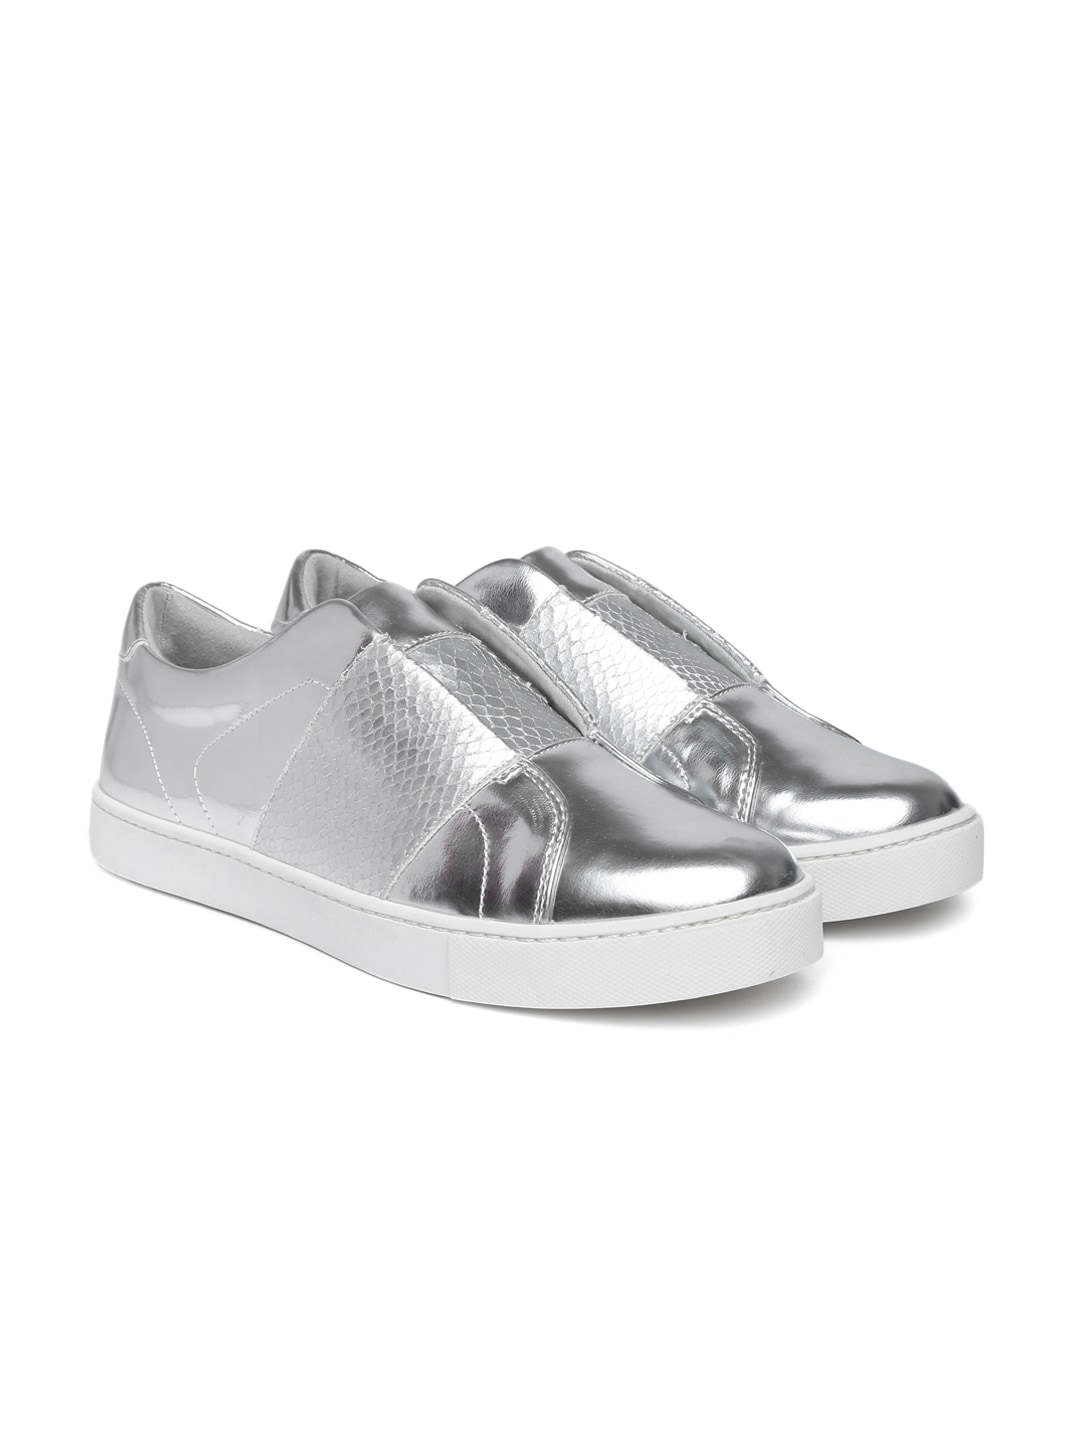 ALDO Women Silver-Toned Slip-On Sneakers